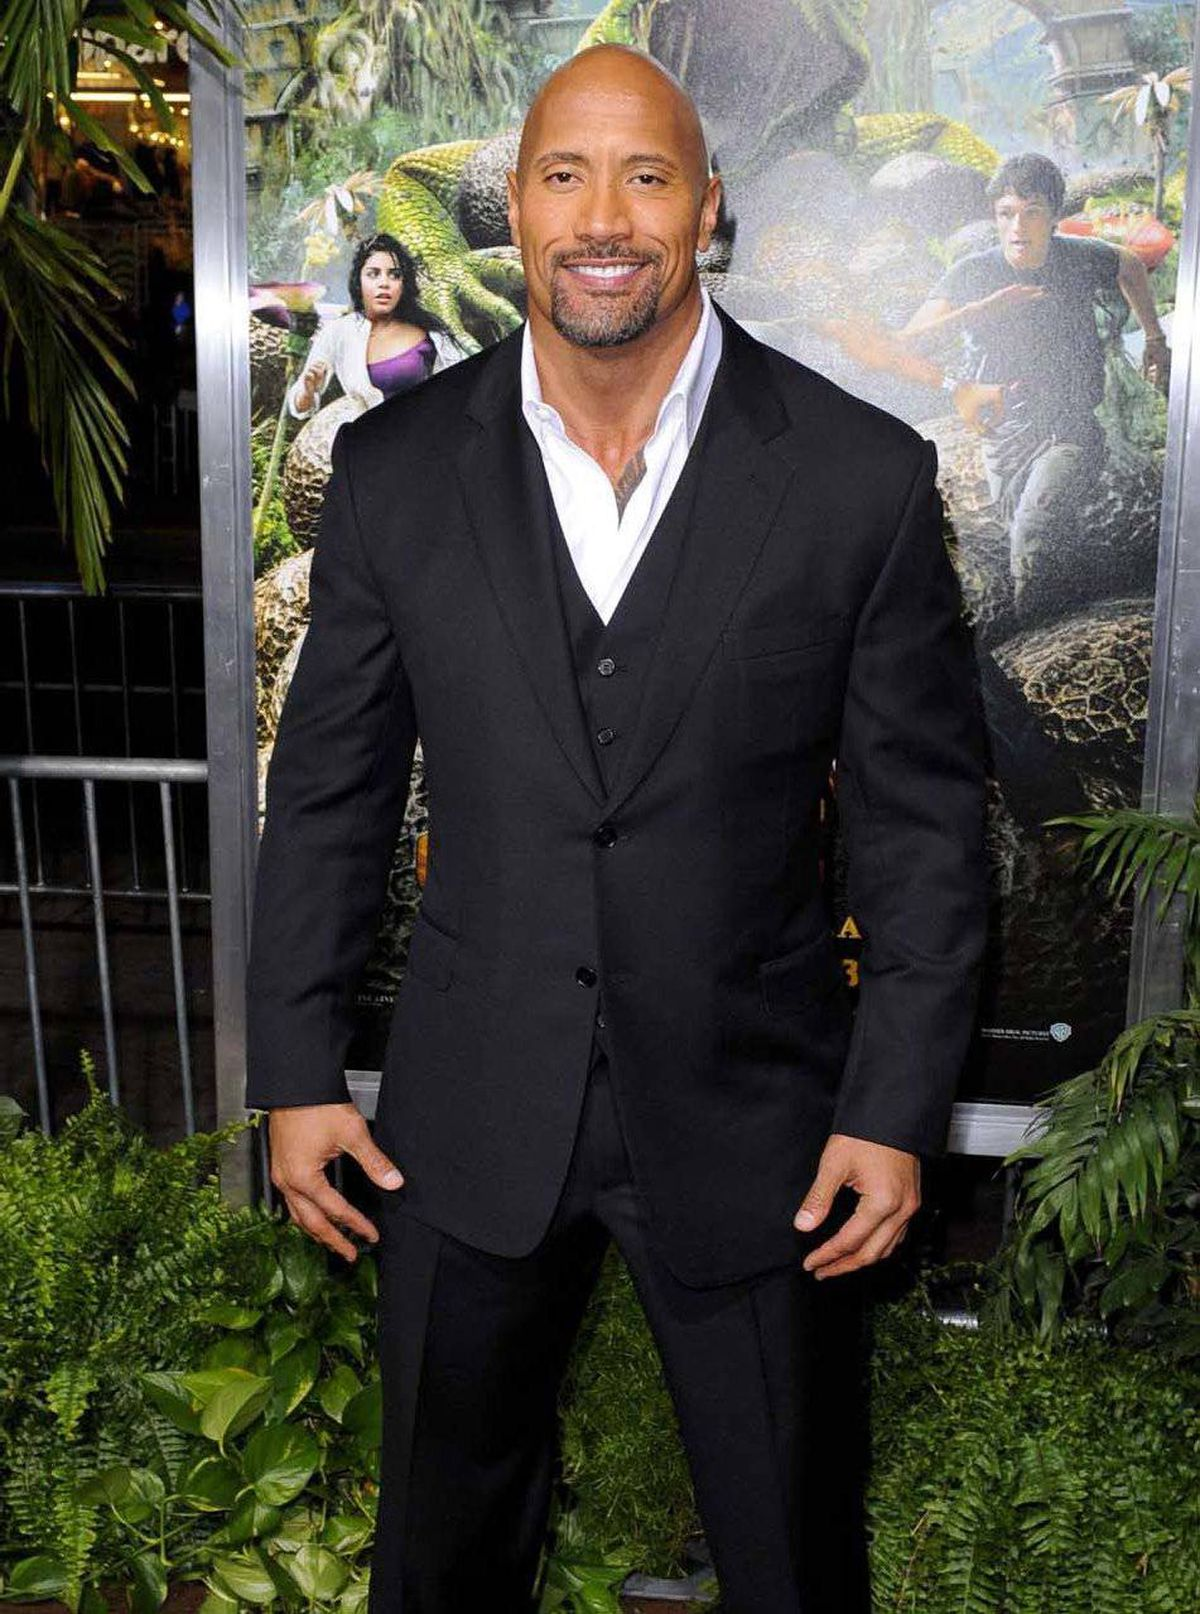 """Dwayne """"The Rock"""" Johnson attends the premiere of """"Journey 2 :The Mysterious Island"""" in Hollywood last week."""